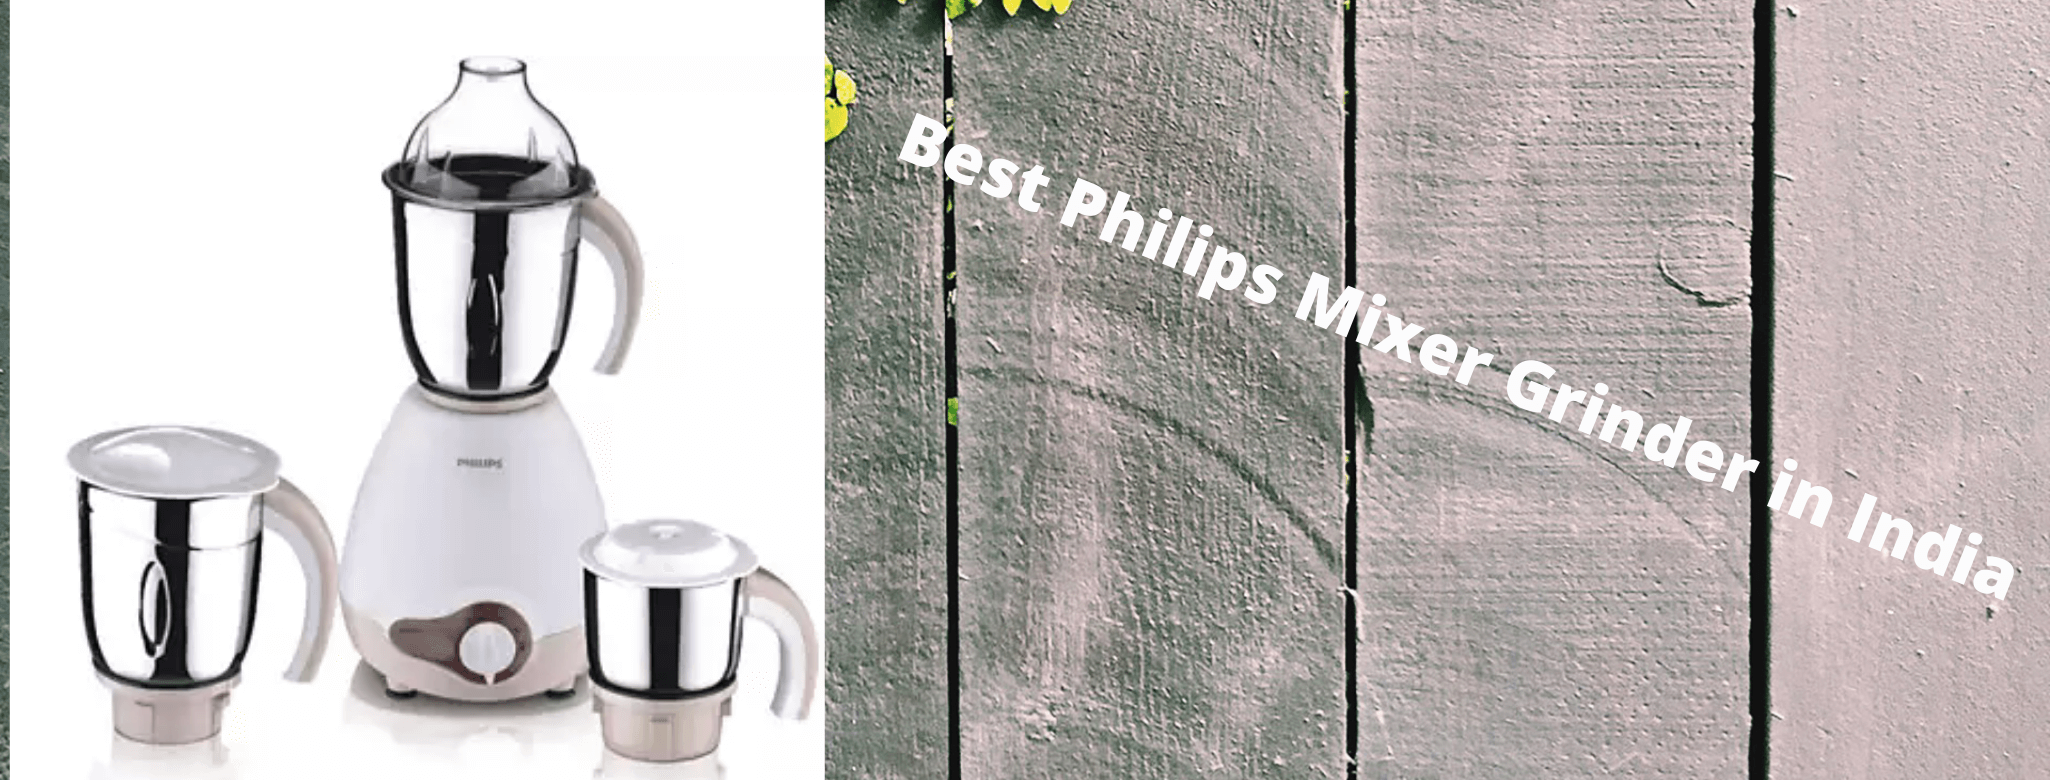 Best Philips Mixer Grinder in India